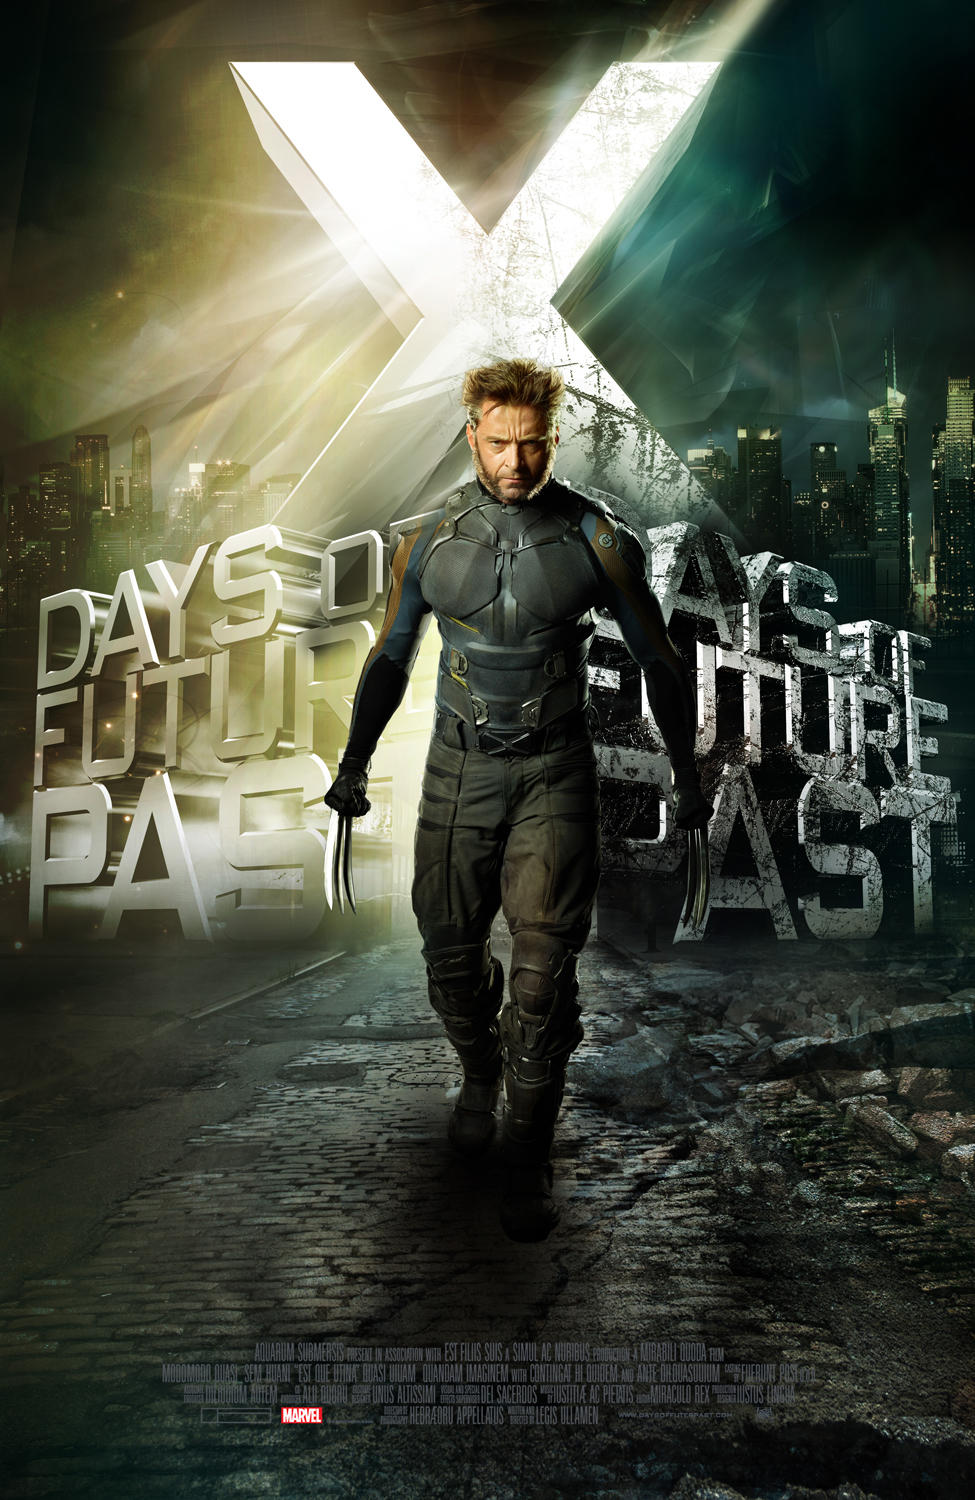 X-Men-Days-of-Future-Past-NEW-Posters-x-men-36891073-975-1500.jpg